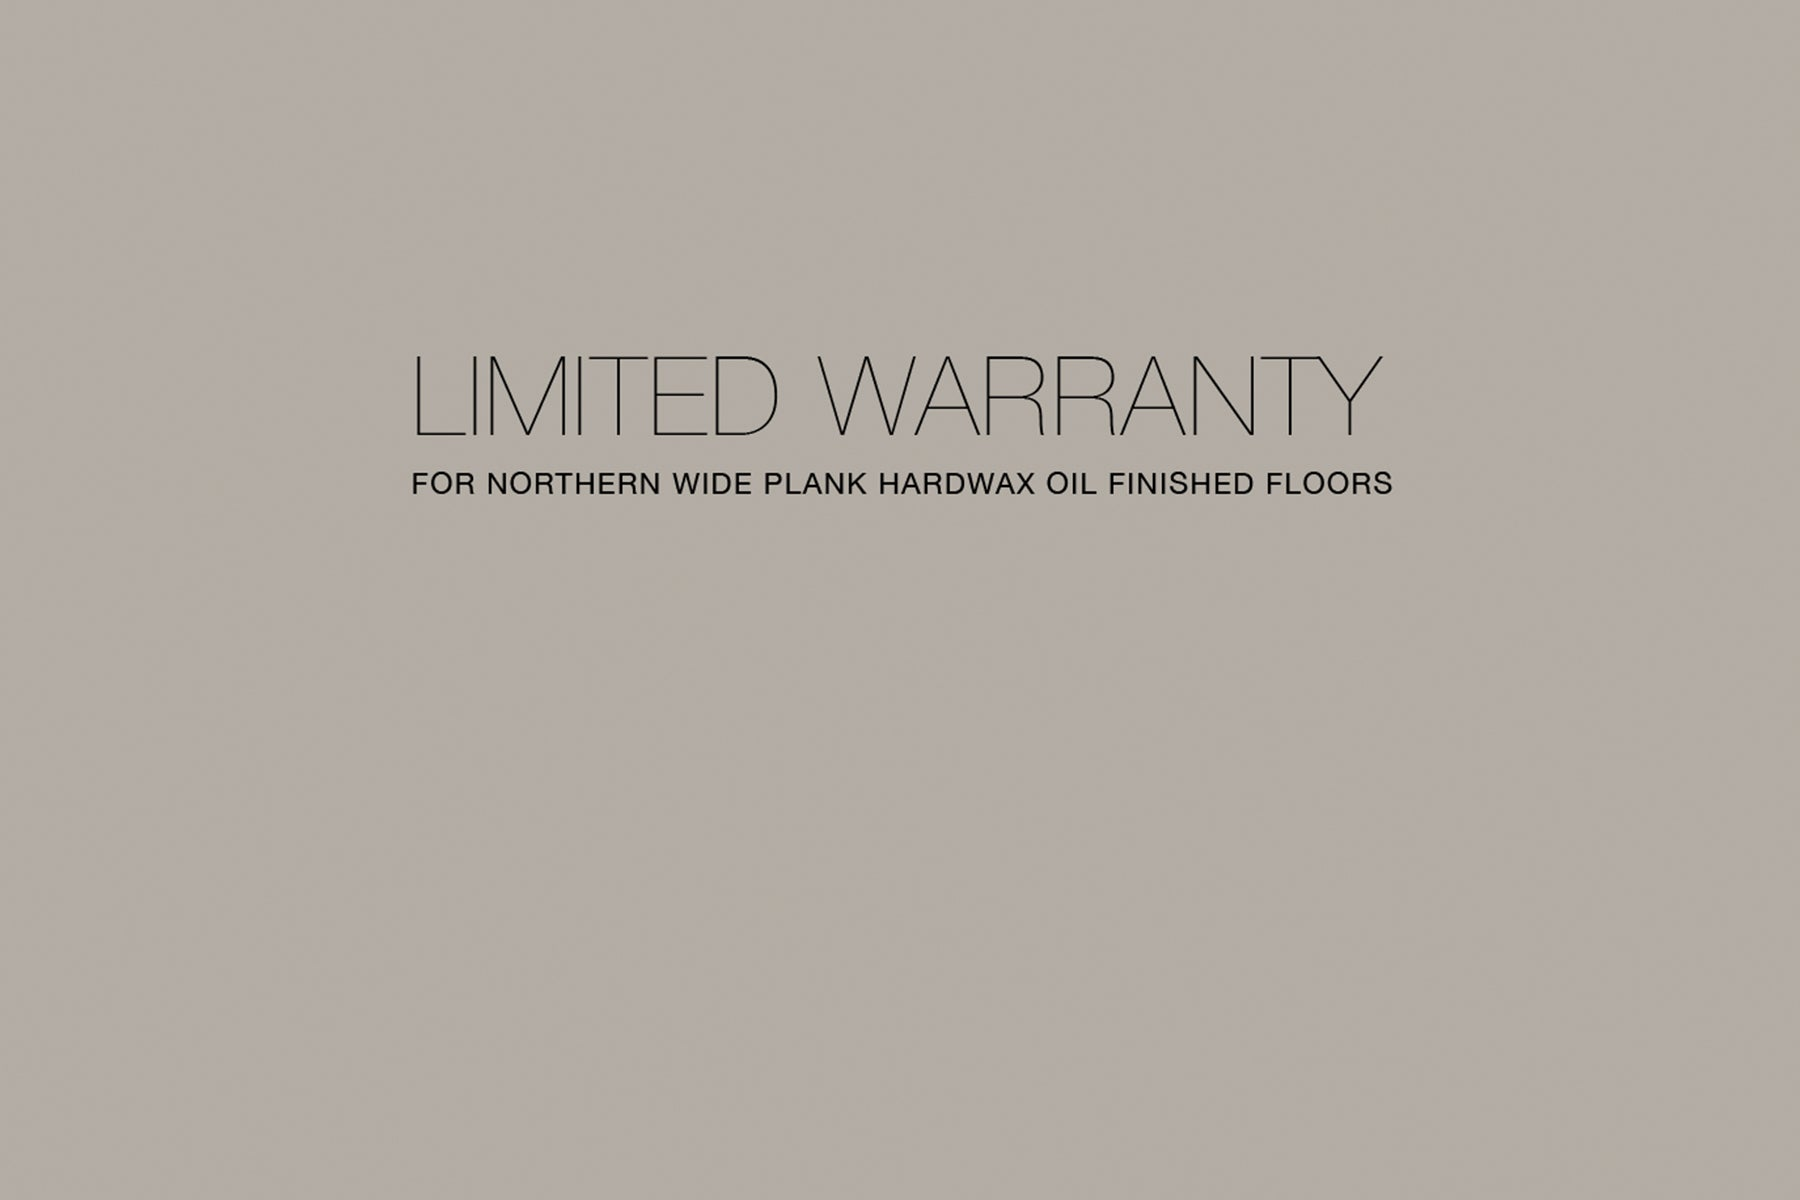 Northern Wide Plank Warranty